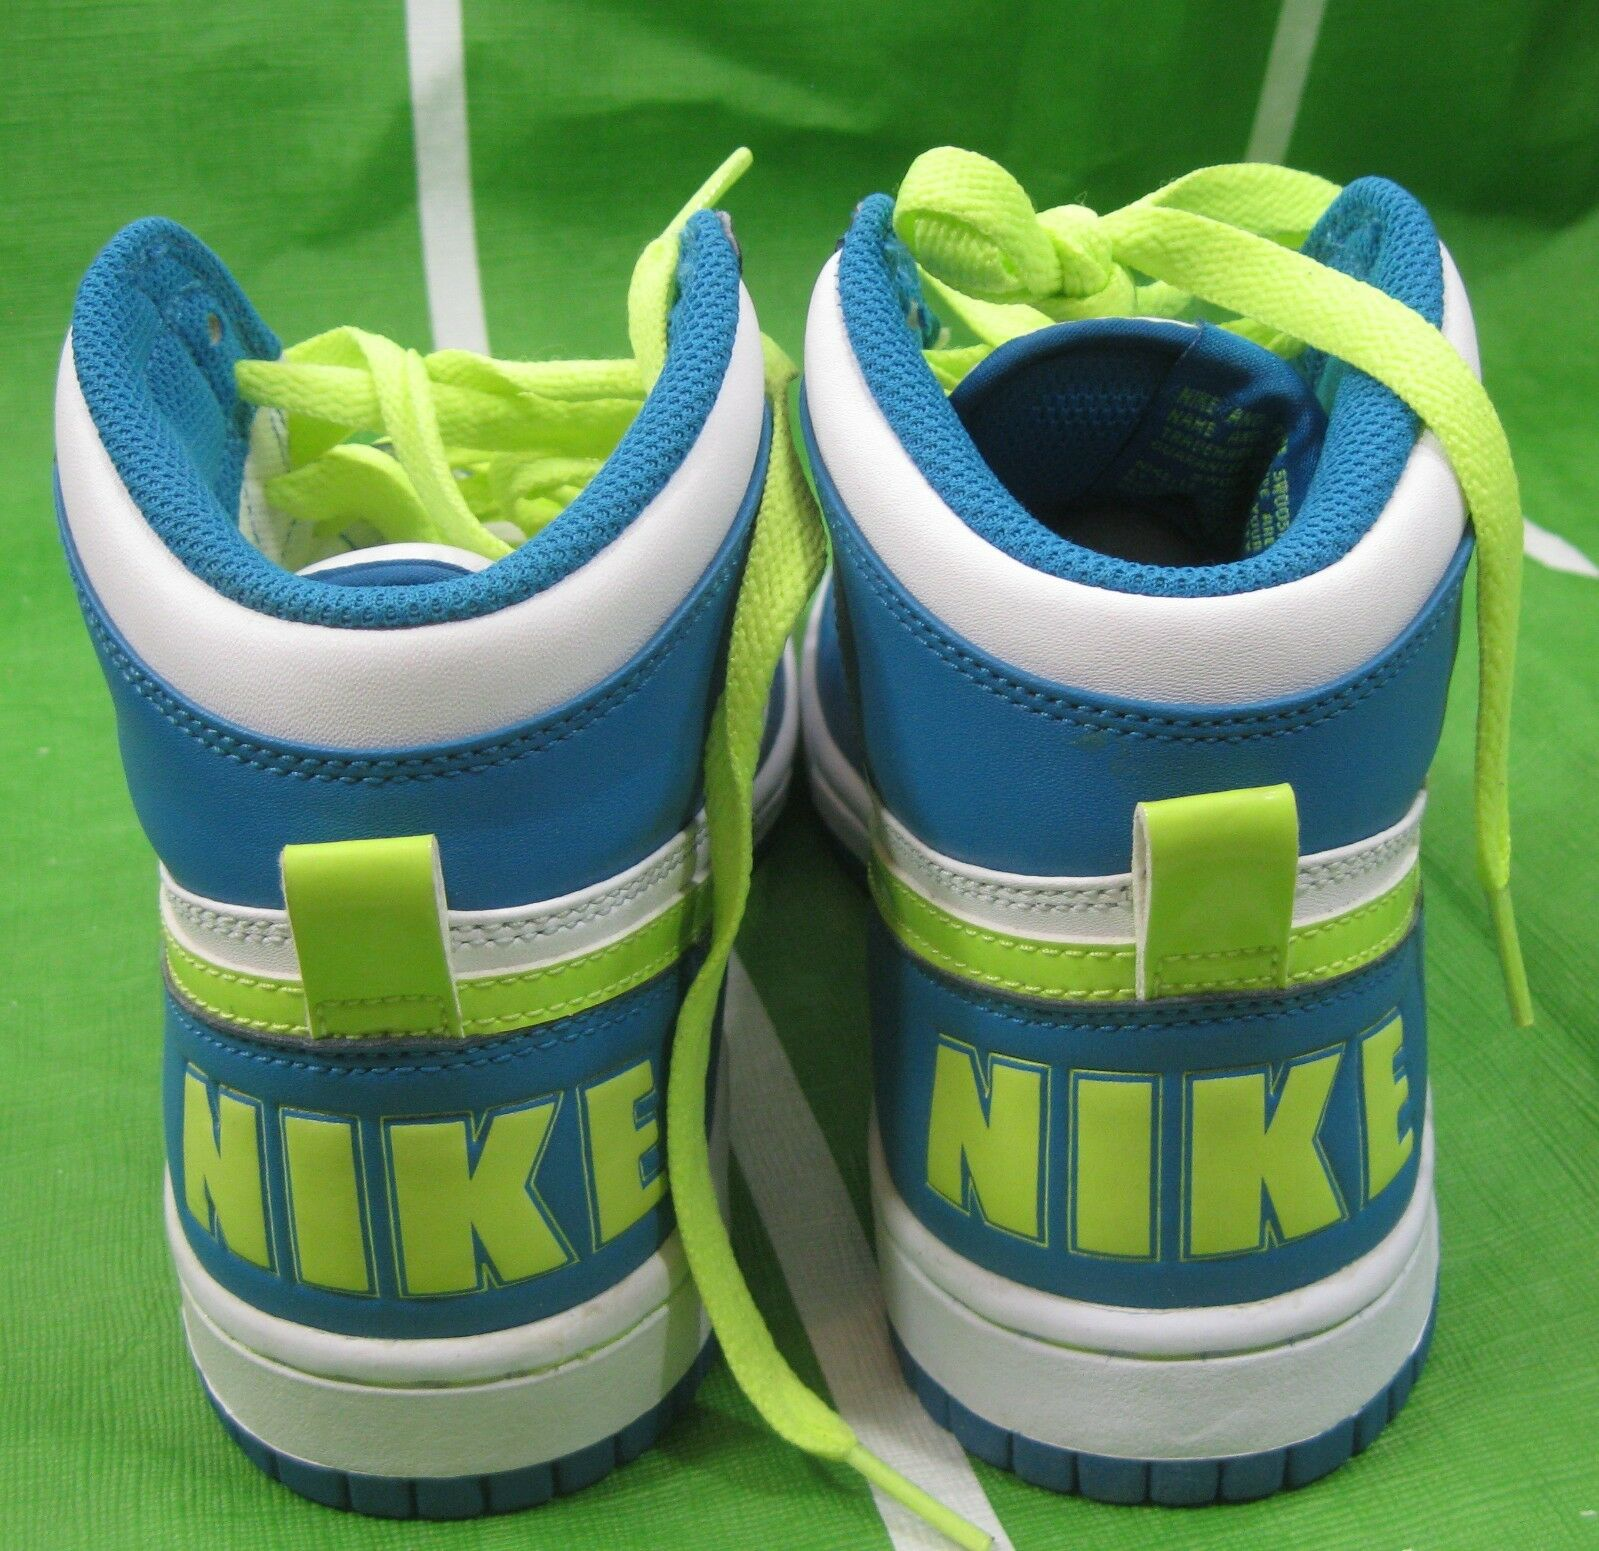 NEW Big Nike High 358858-171 bluee Volt Sneakers Sneakers Sneakers shoes Size 7.5 589735